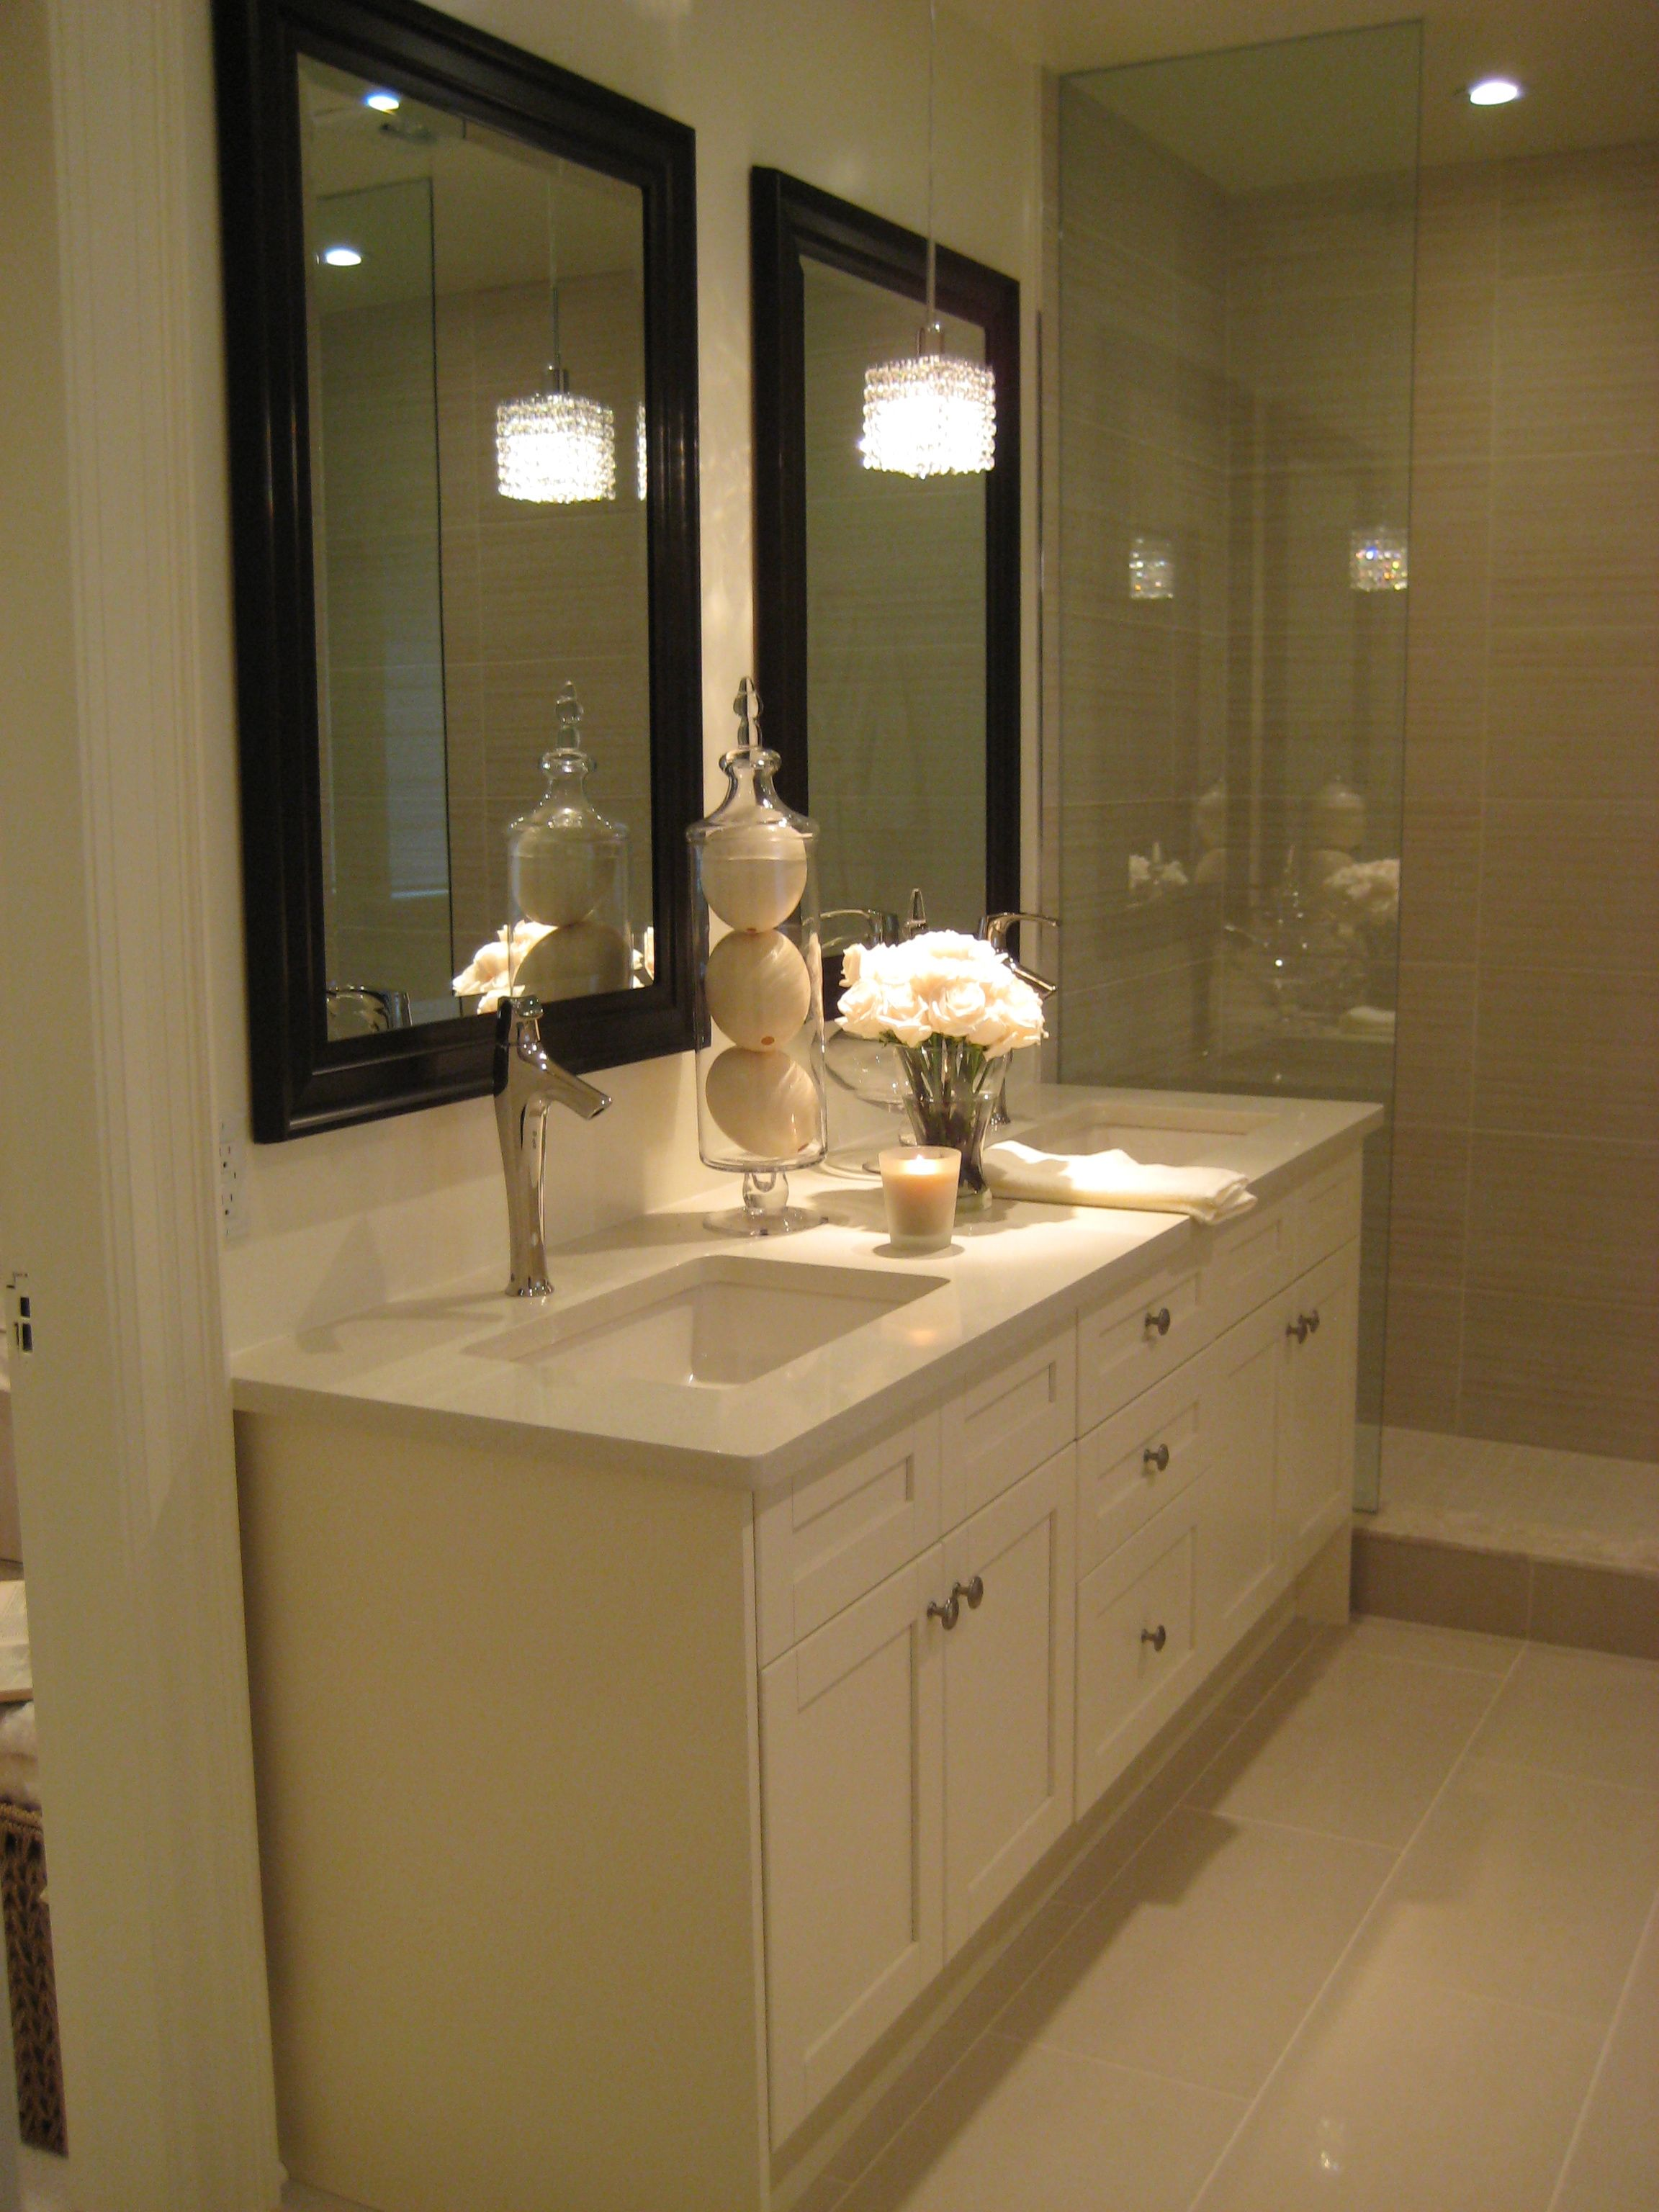 En Suite Bathroom Double Vanity In Off White With